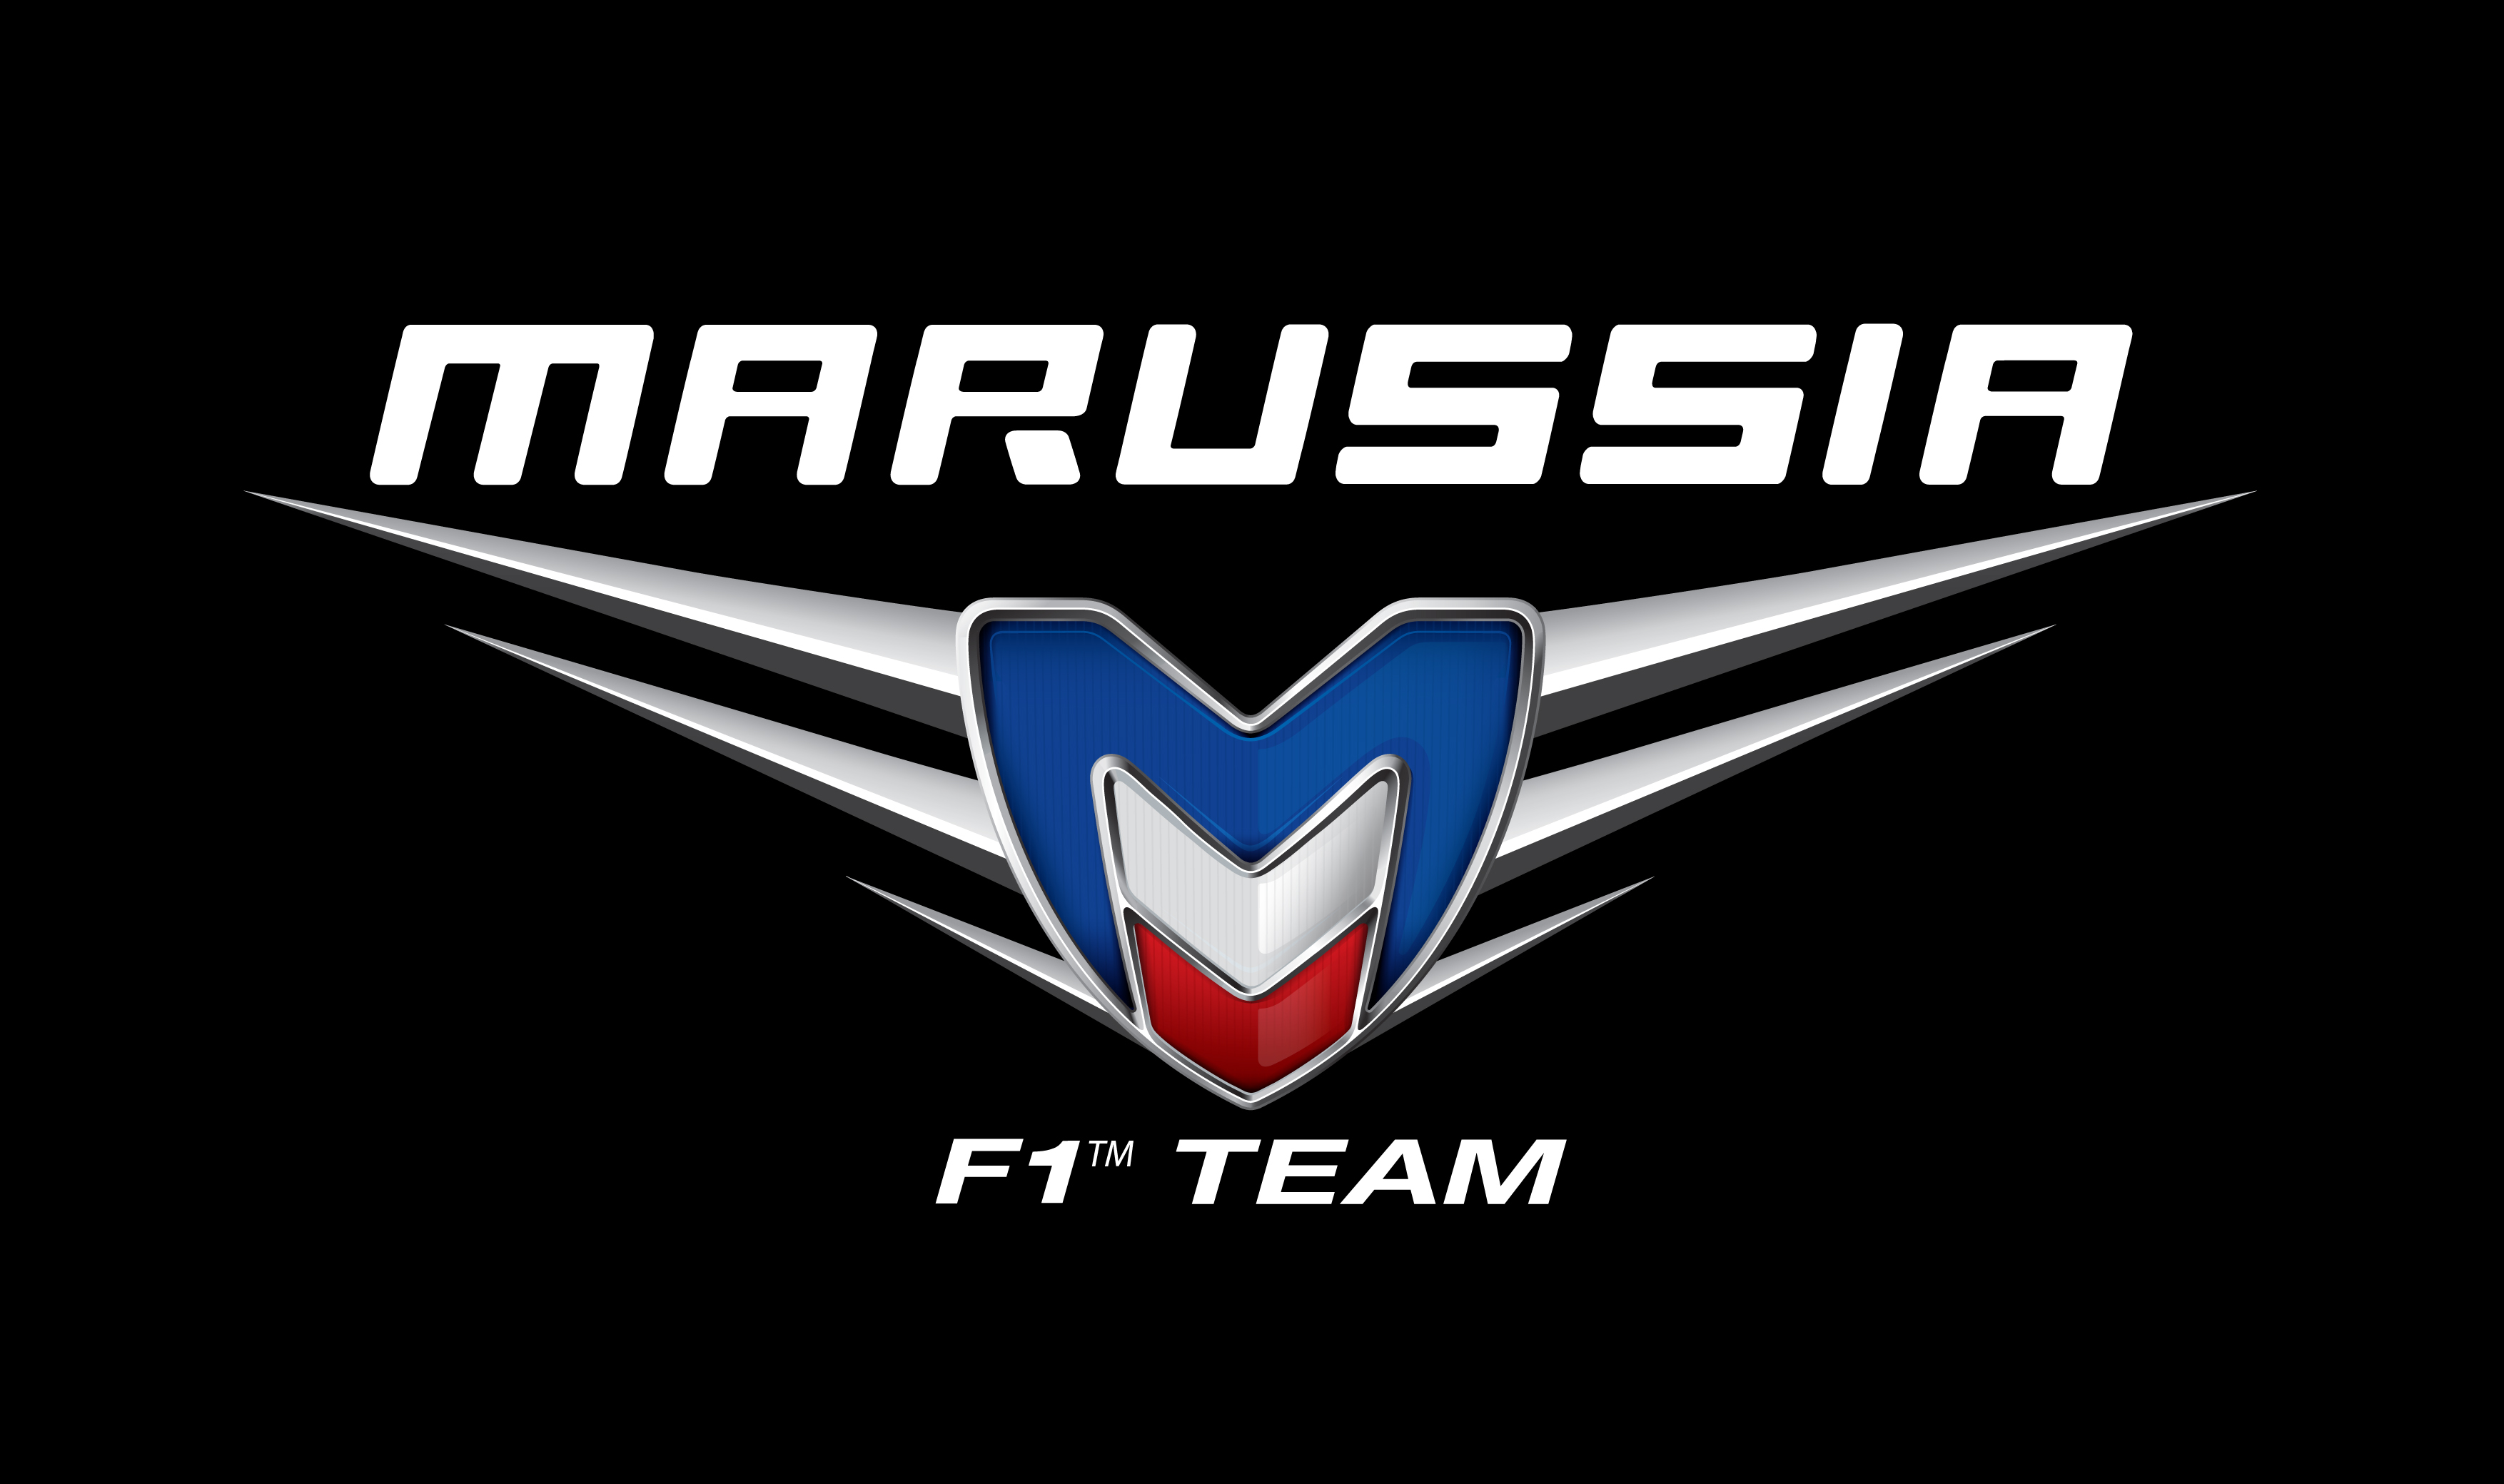 Marussia Logo Wallpaper